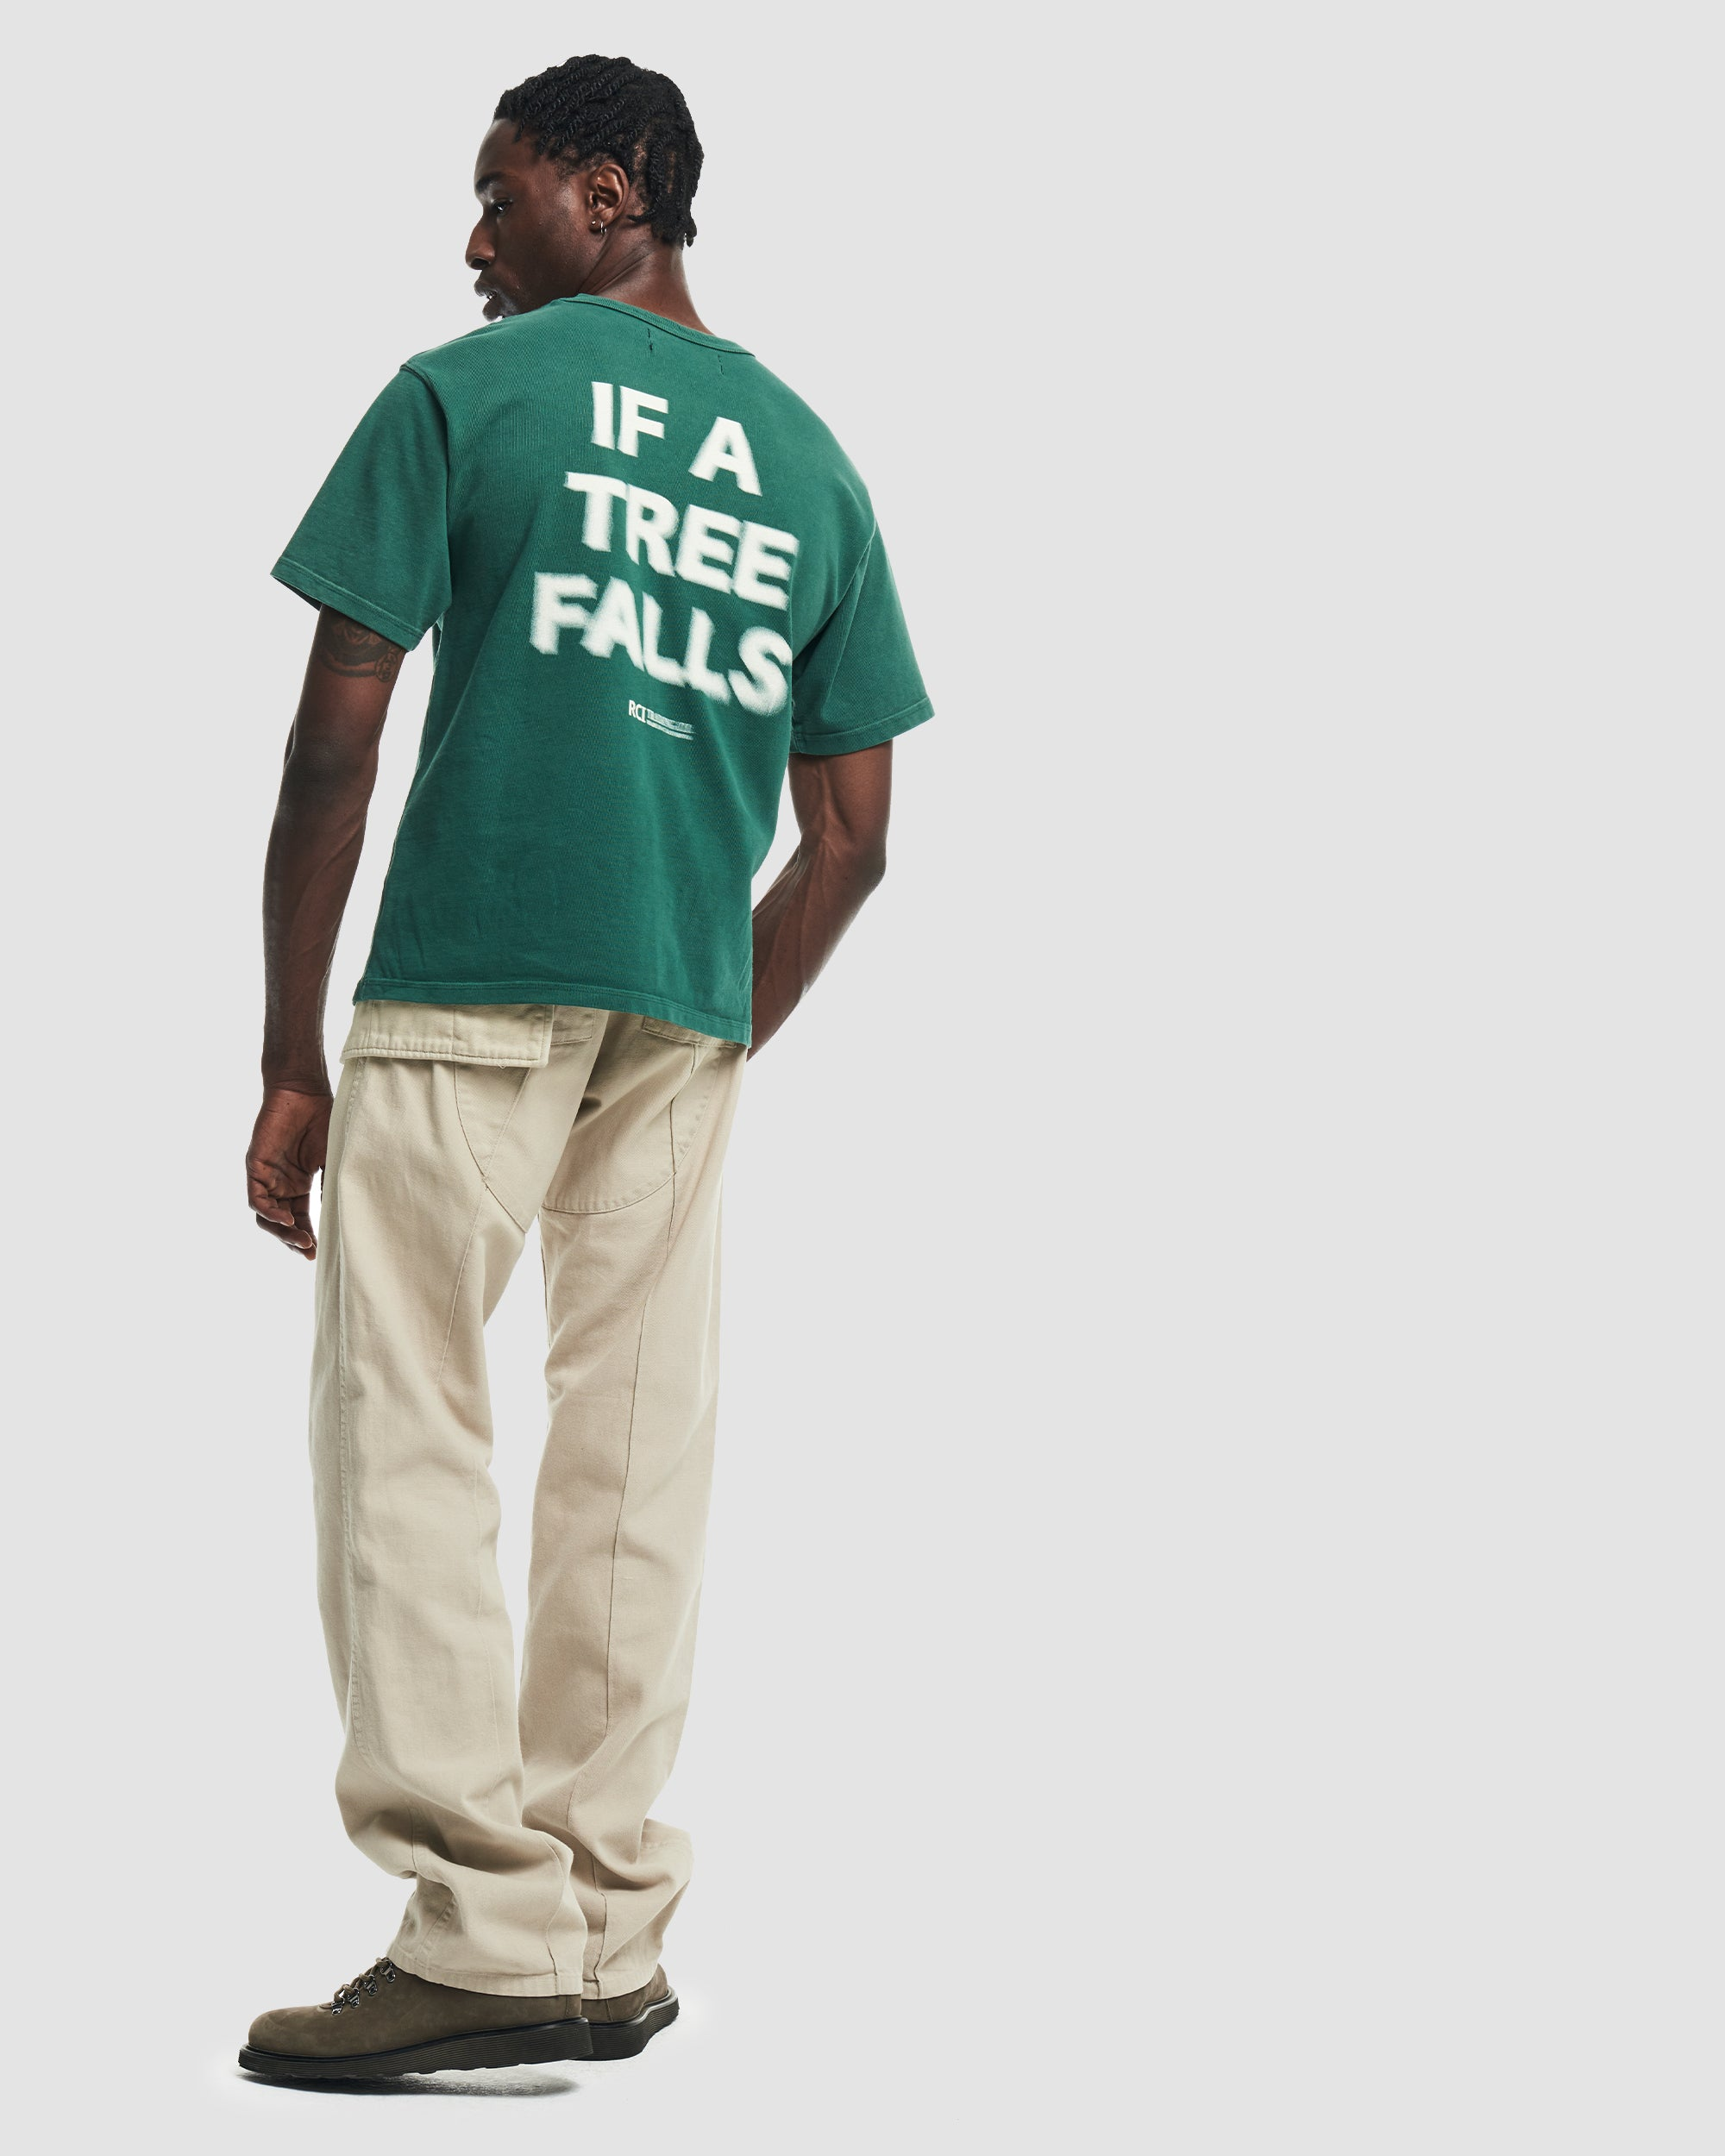 If A Tree Falls Tee Shirt in Green